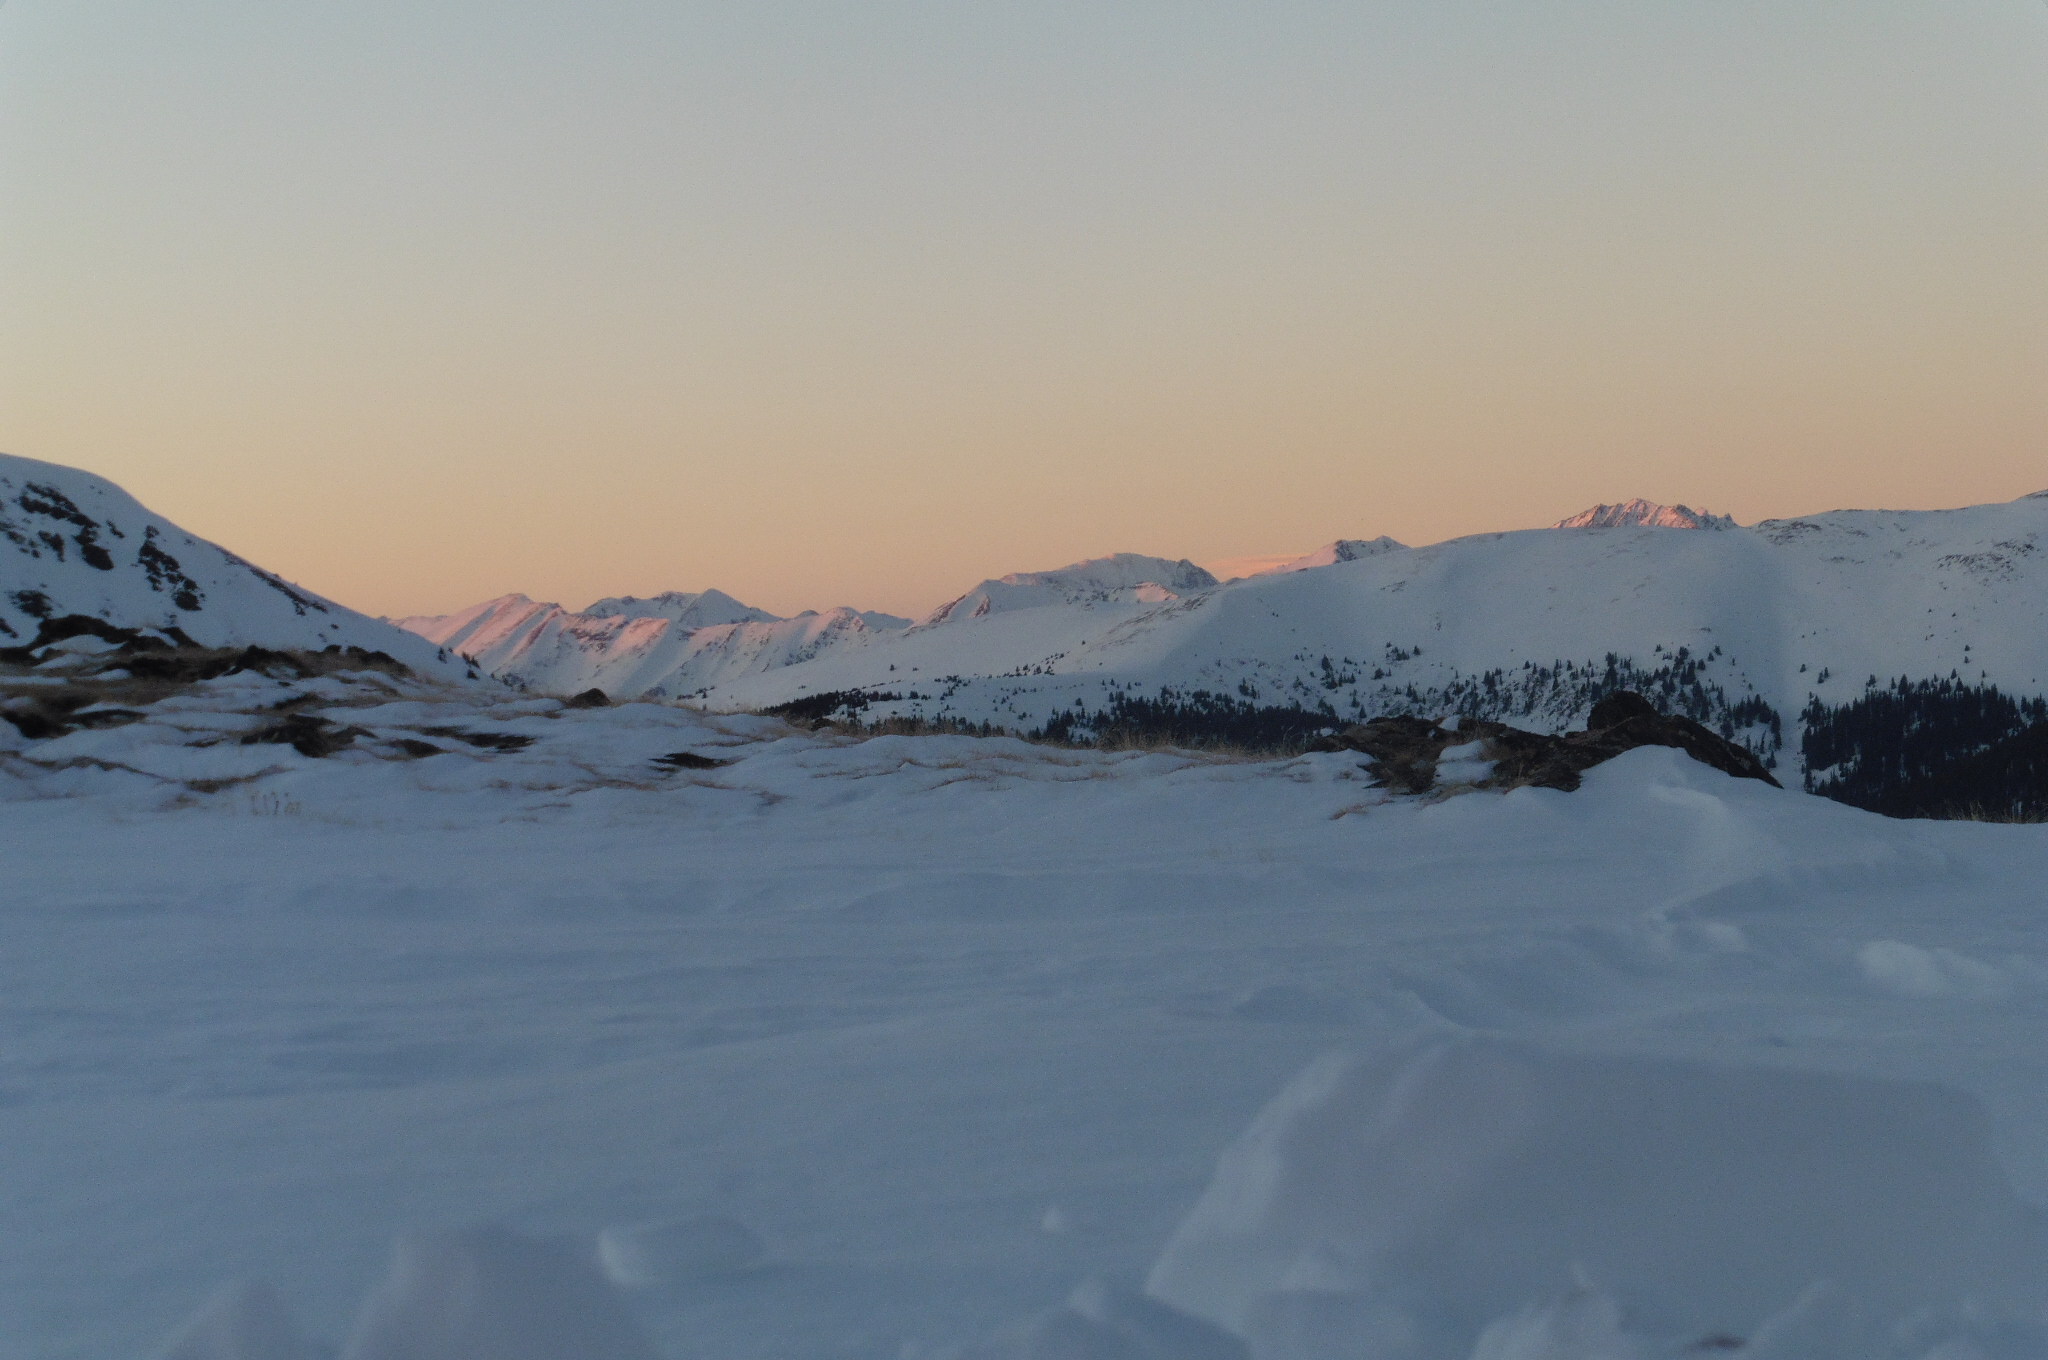 Lazy sunset pic from the comfort of my sleeping bag. Not a bad a view for lying in a tent.